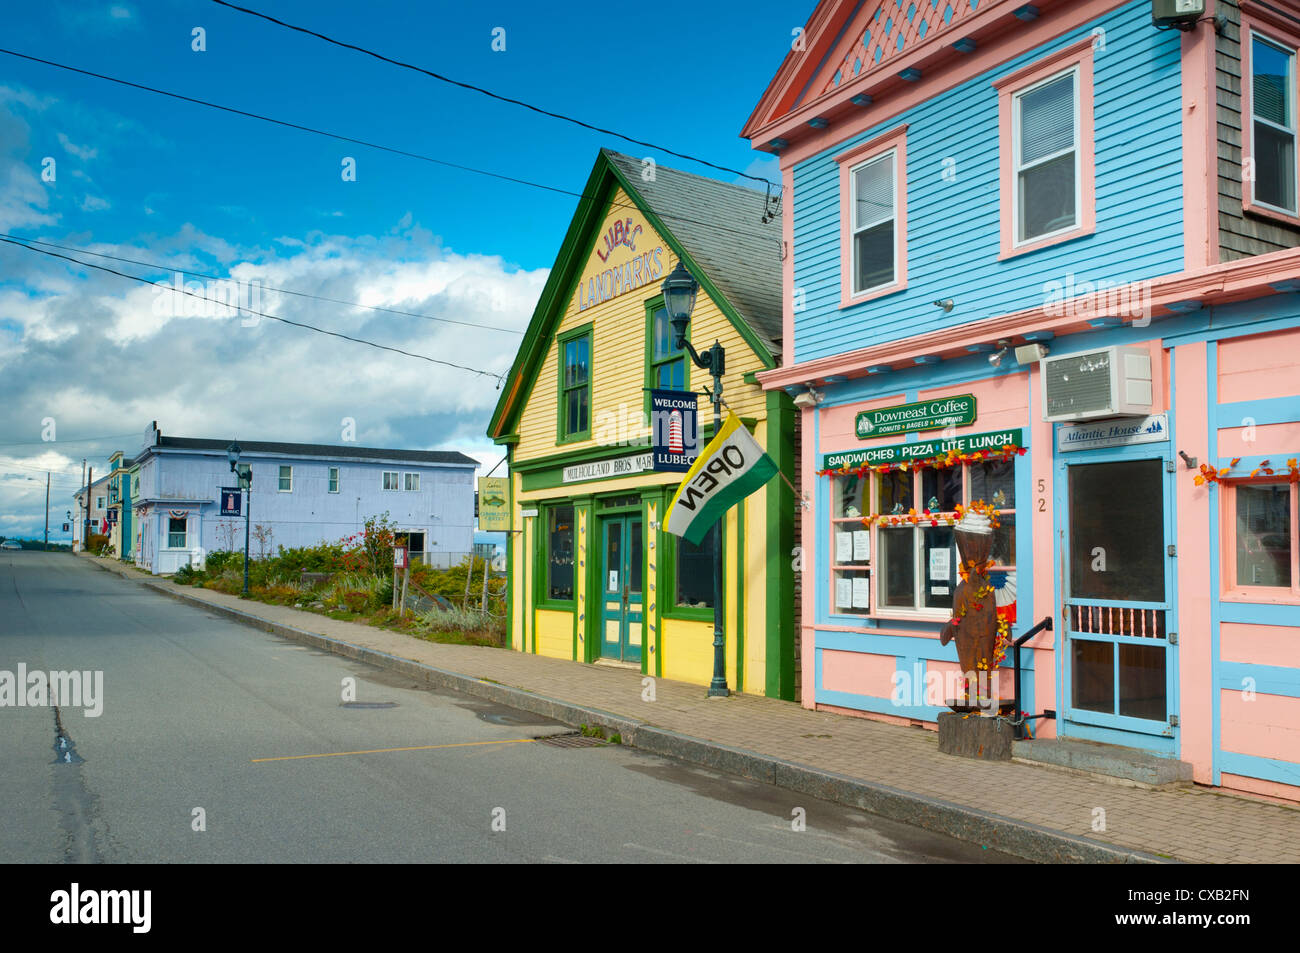 Lubec, the most easterly town in continental U.S.A., Maine, New England, United States of America, North America - Stock Image